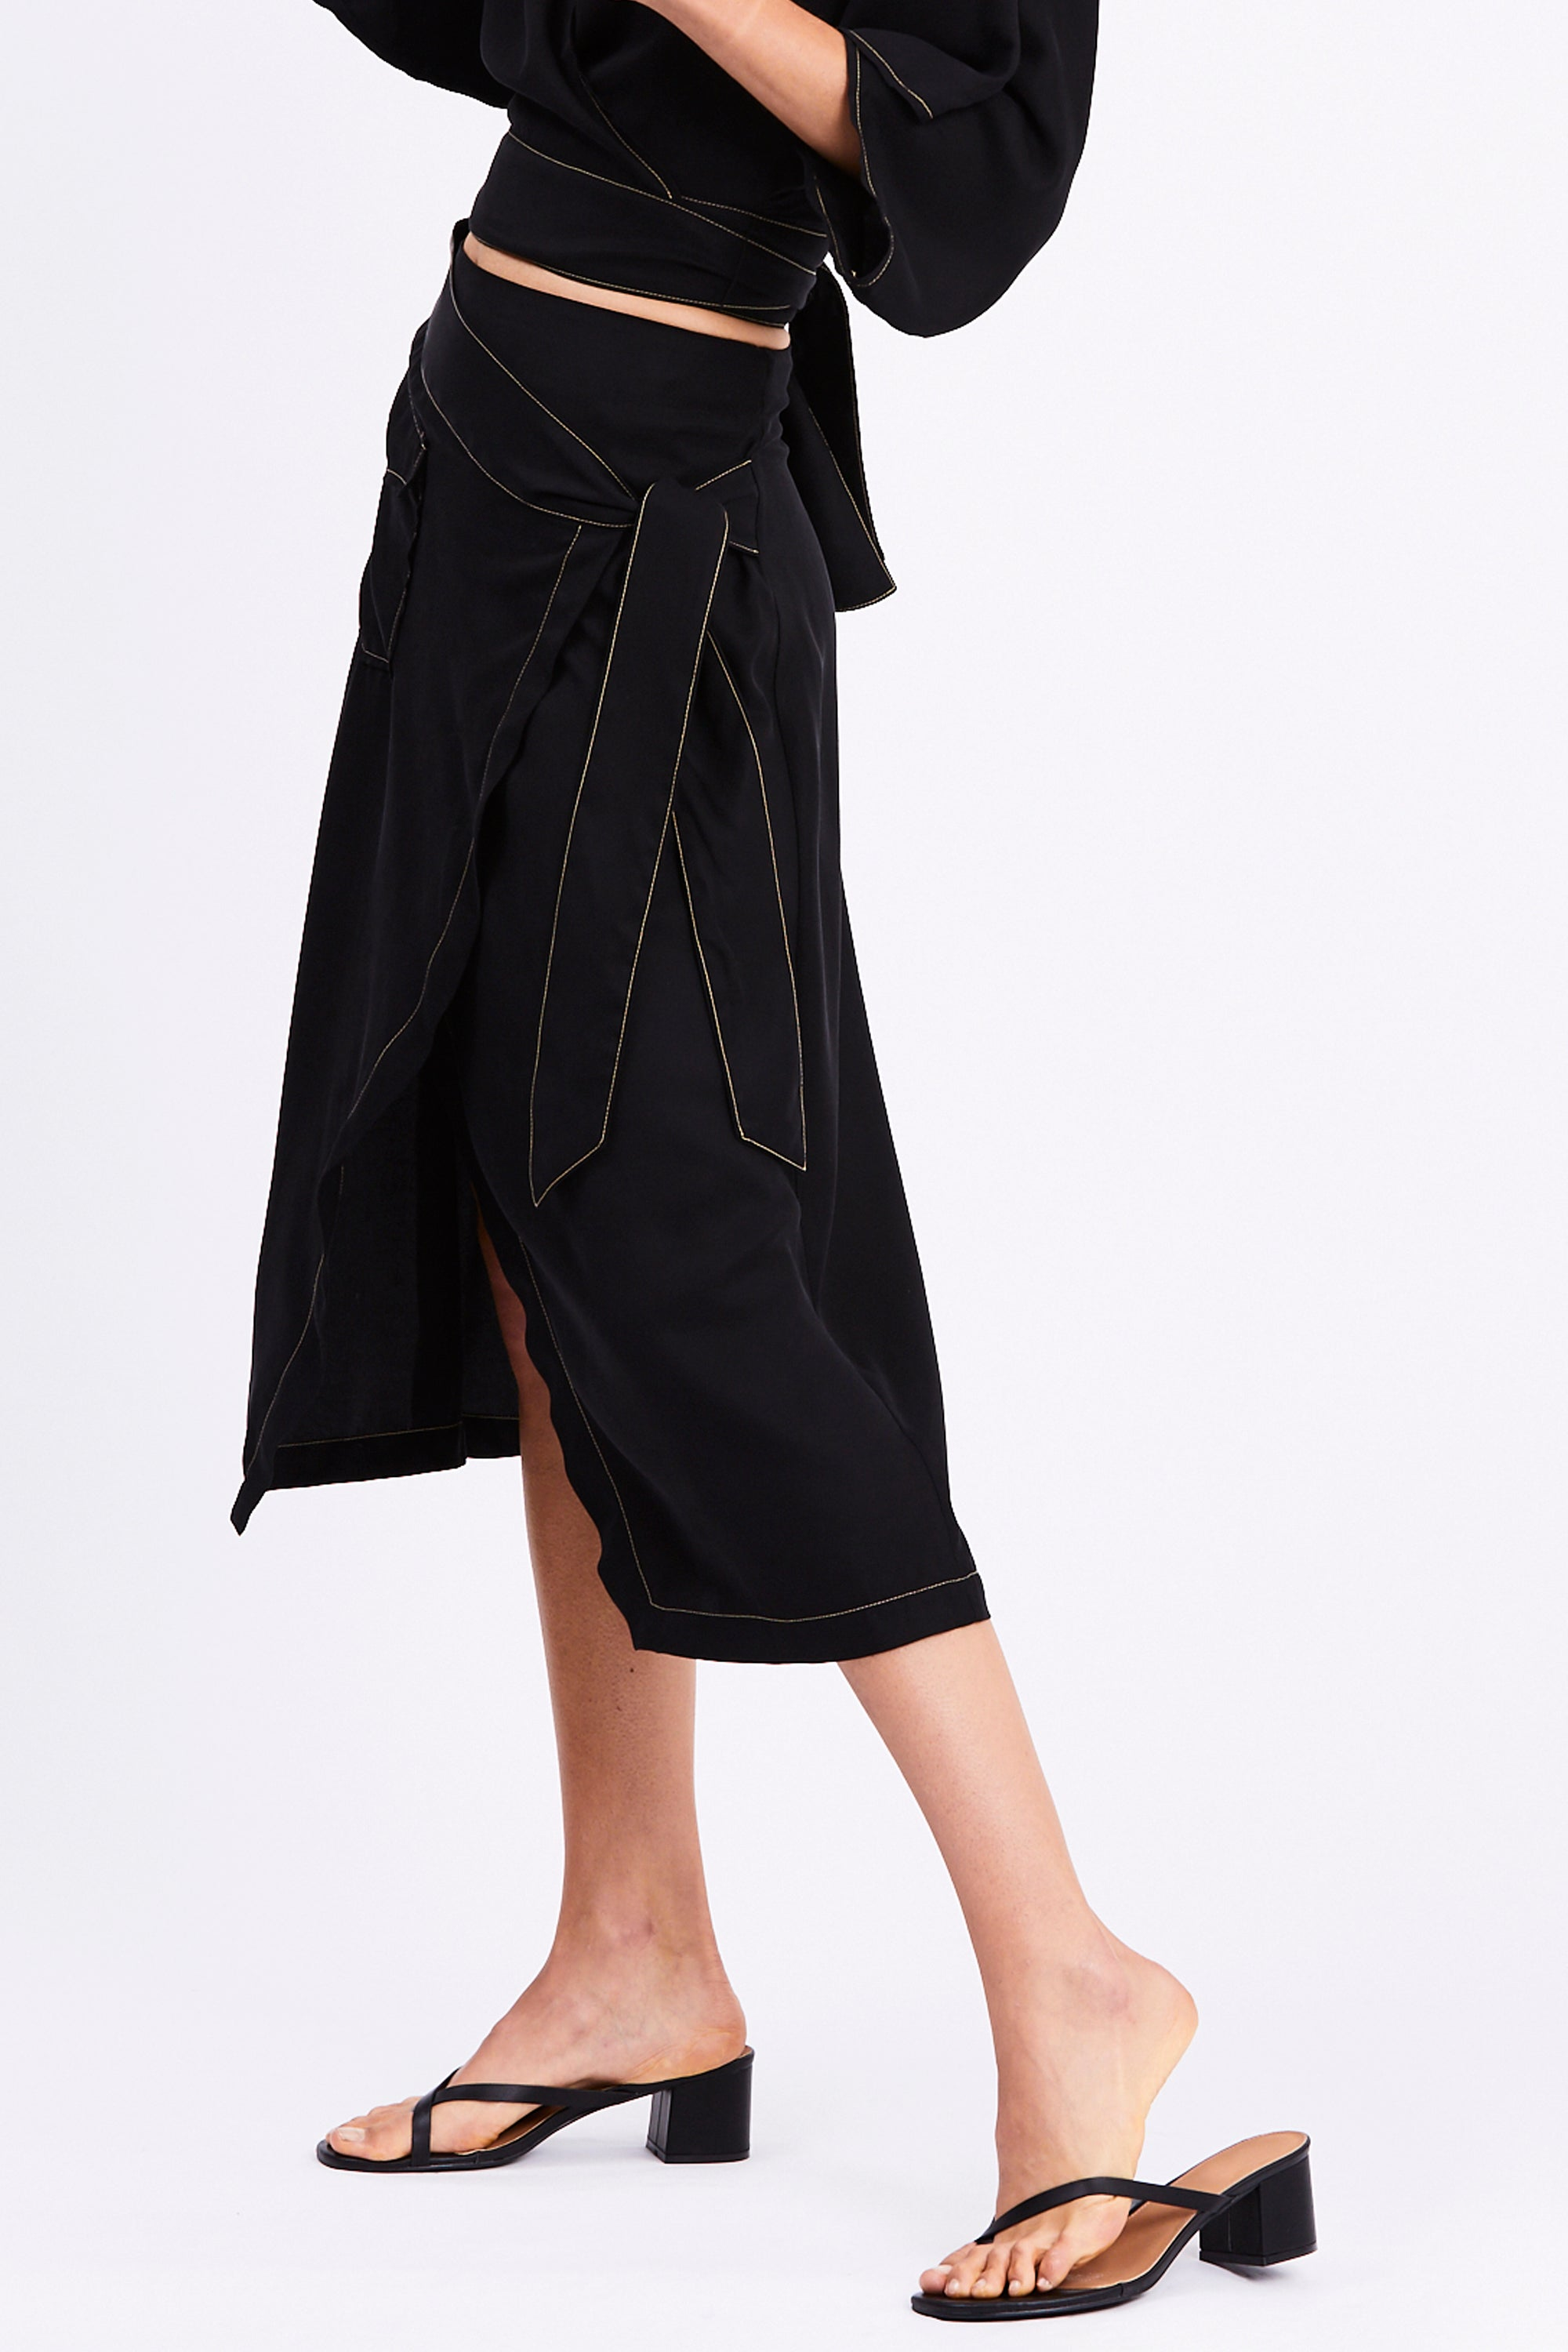 WESTERN WRAP SKIRT | BLACK